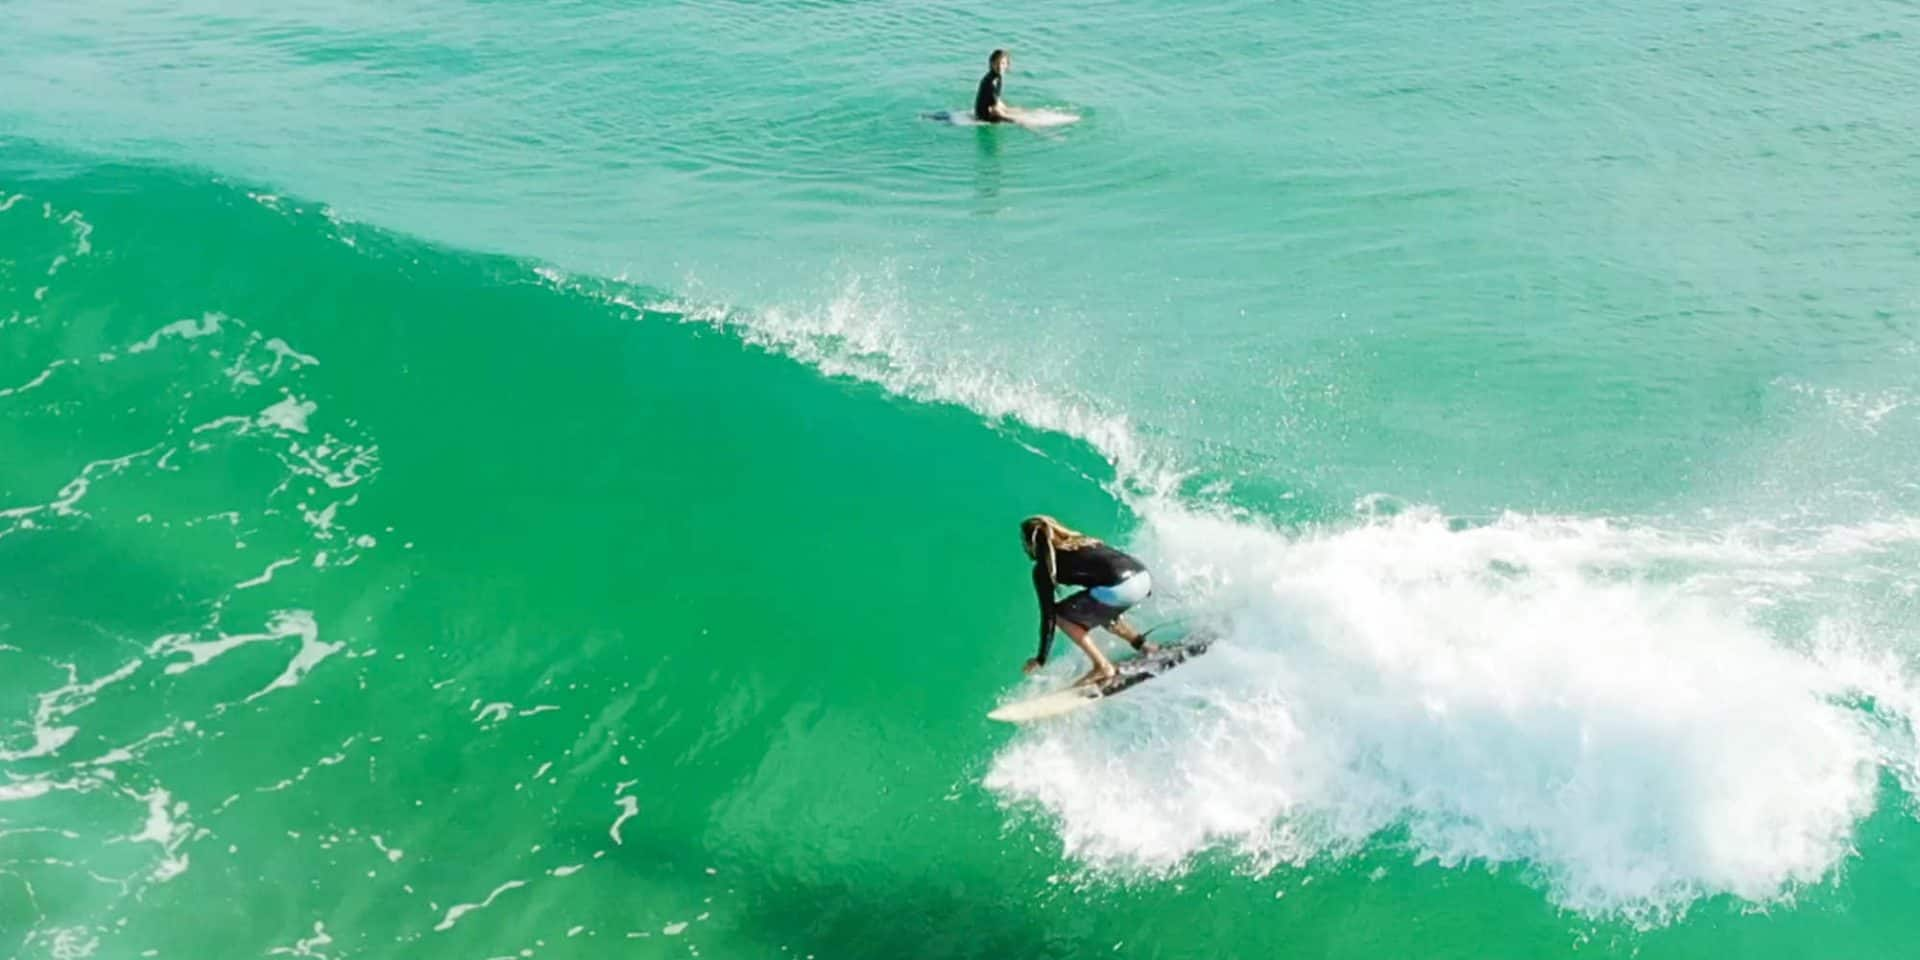 byron bay surf guide surf spots the pass the wreck surf shops australia surfing